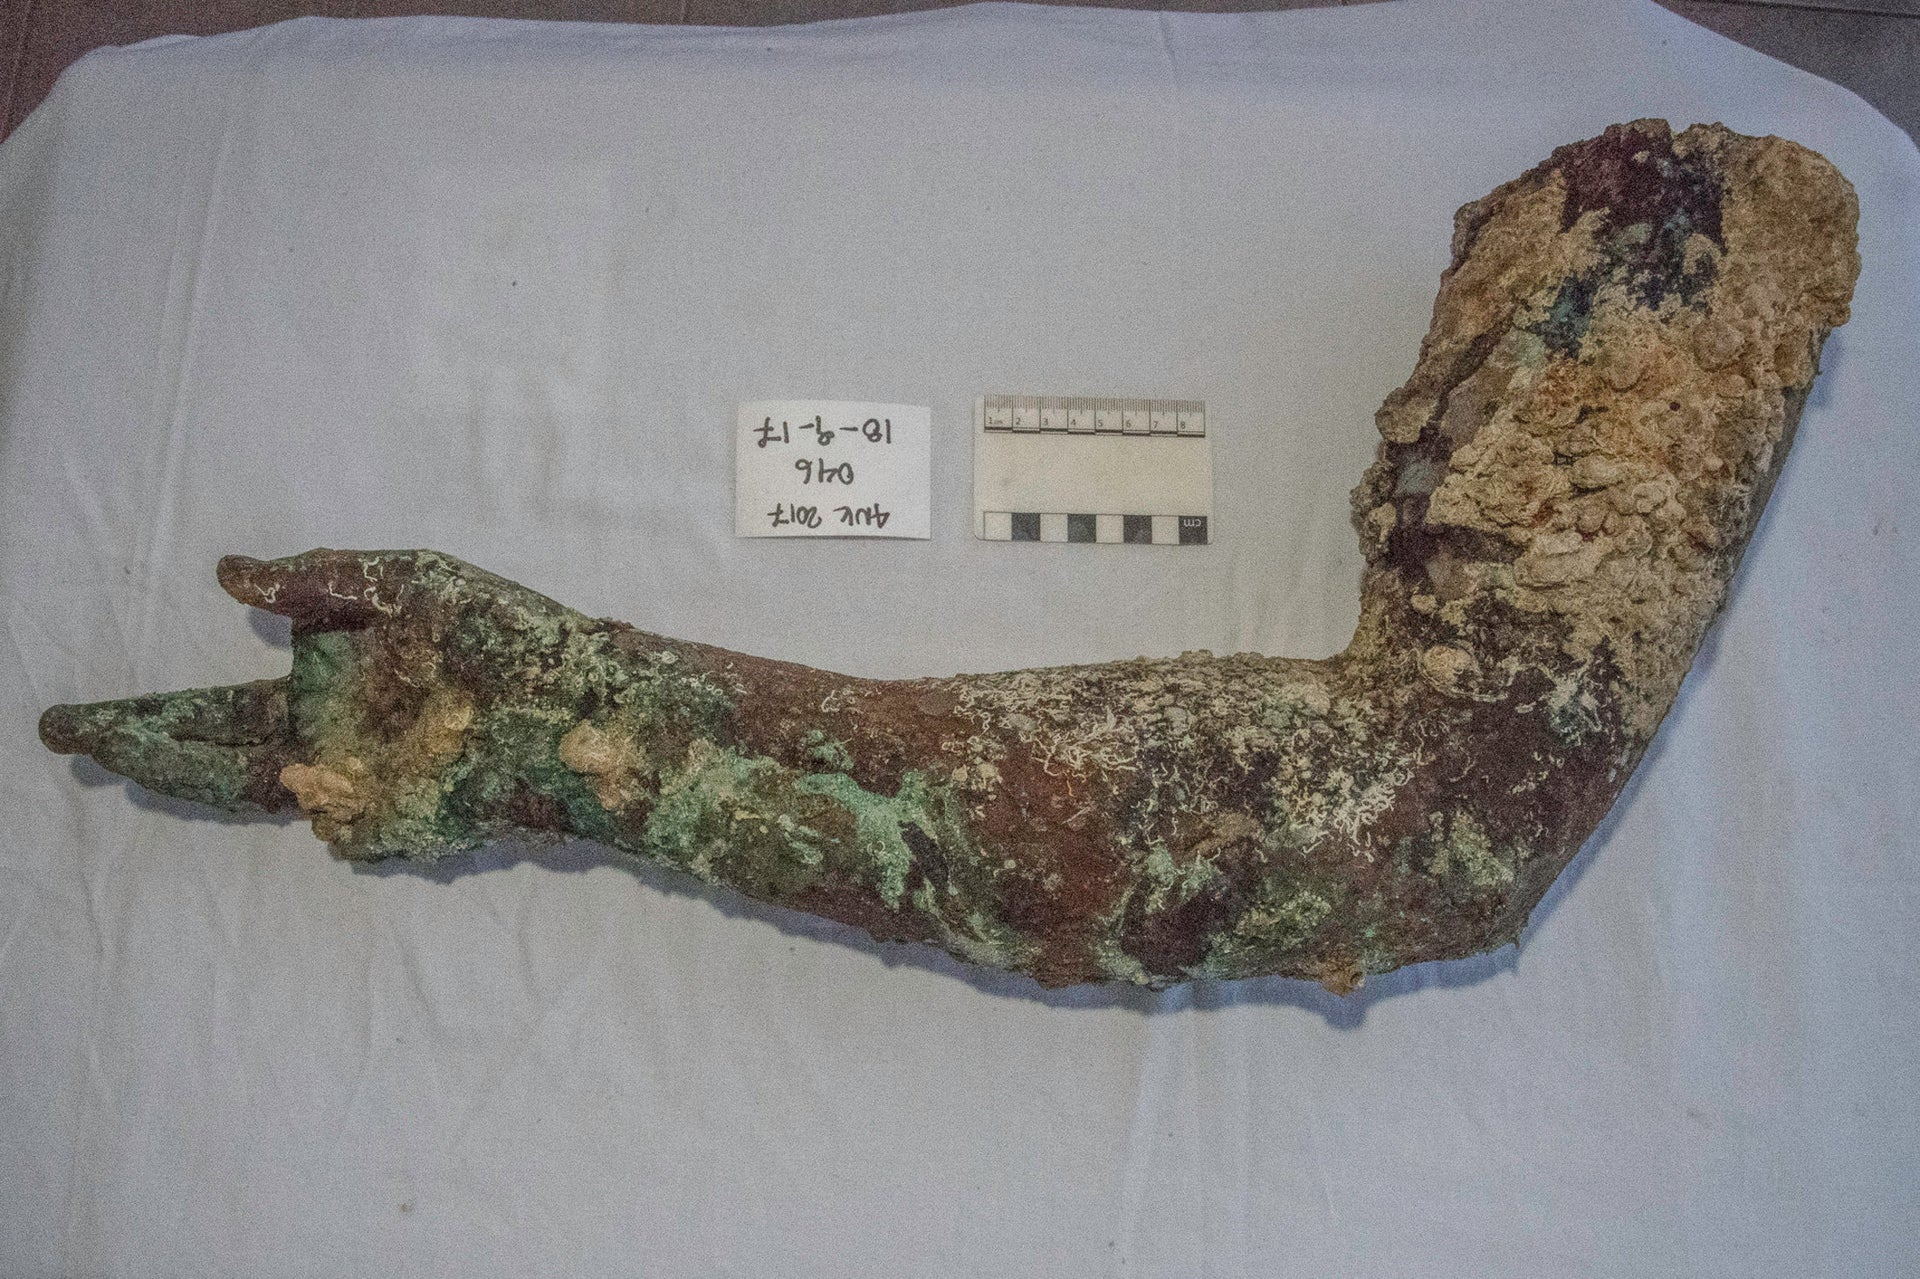 In 2017 the divers found this bronze arm at the wreck site